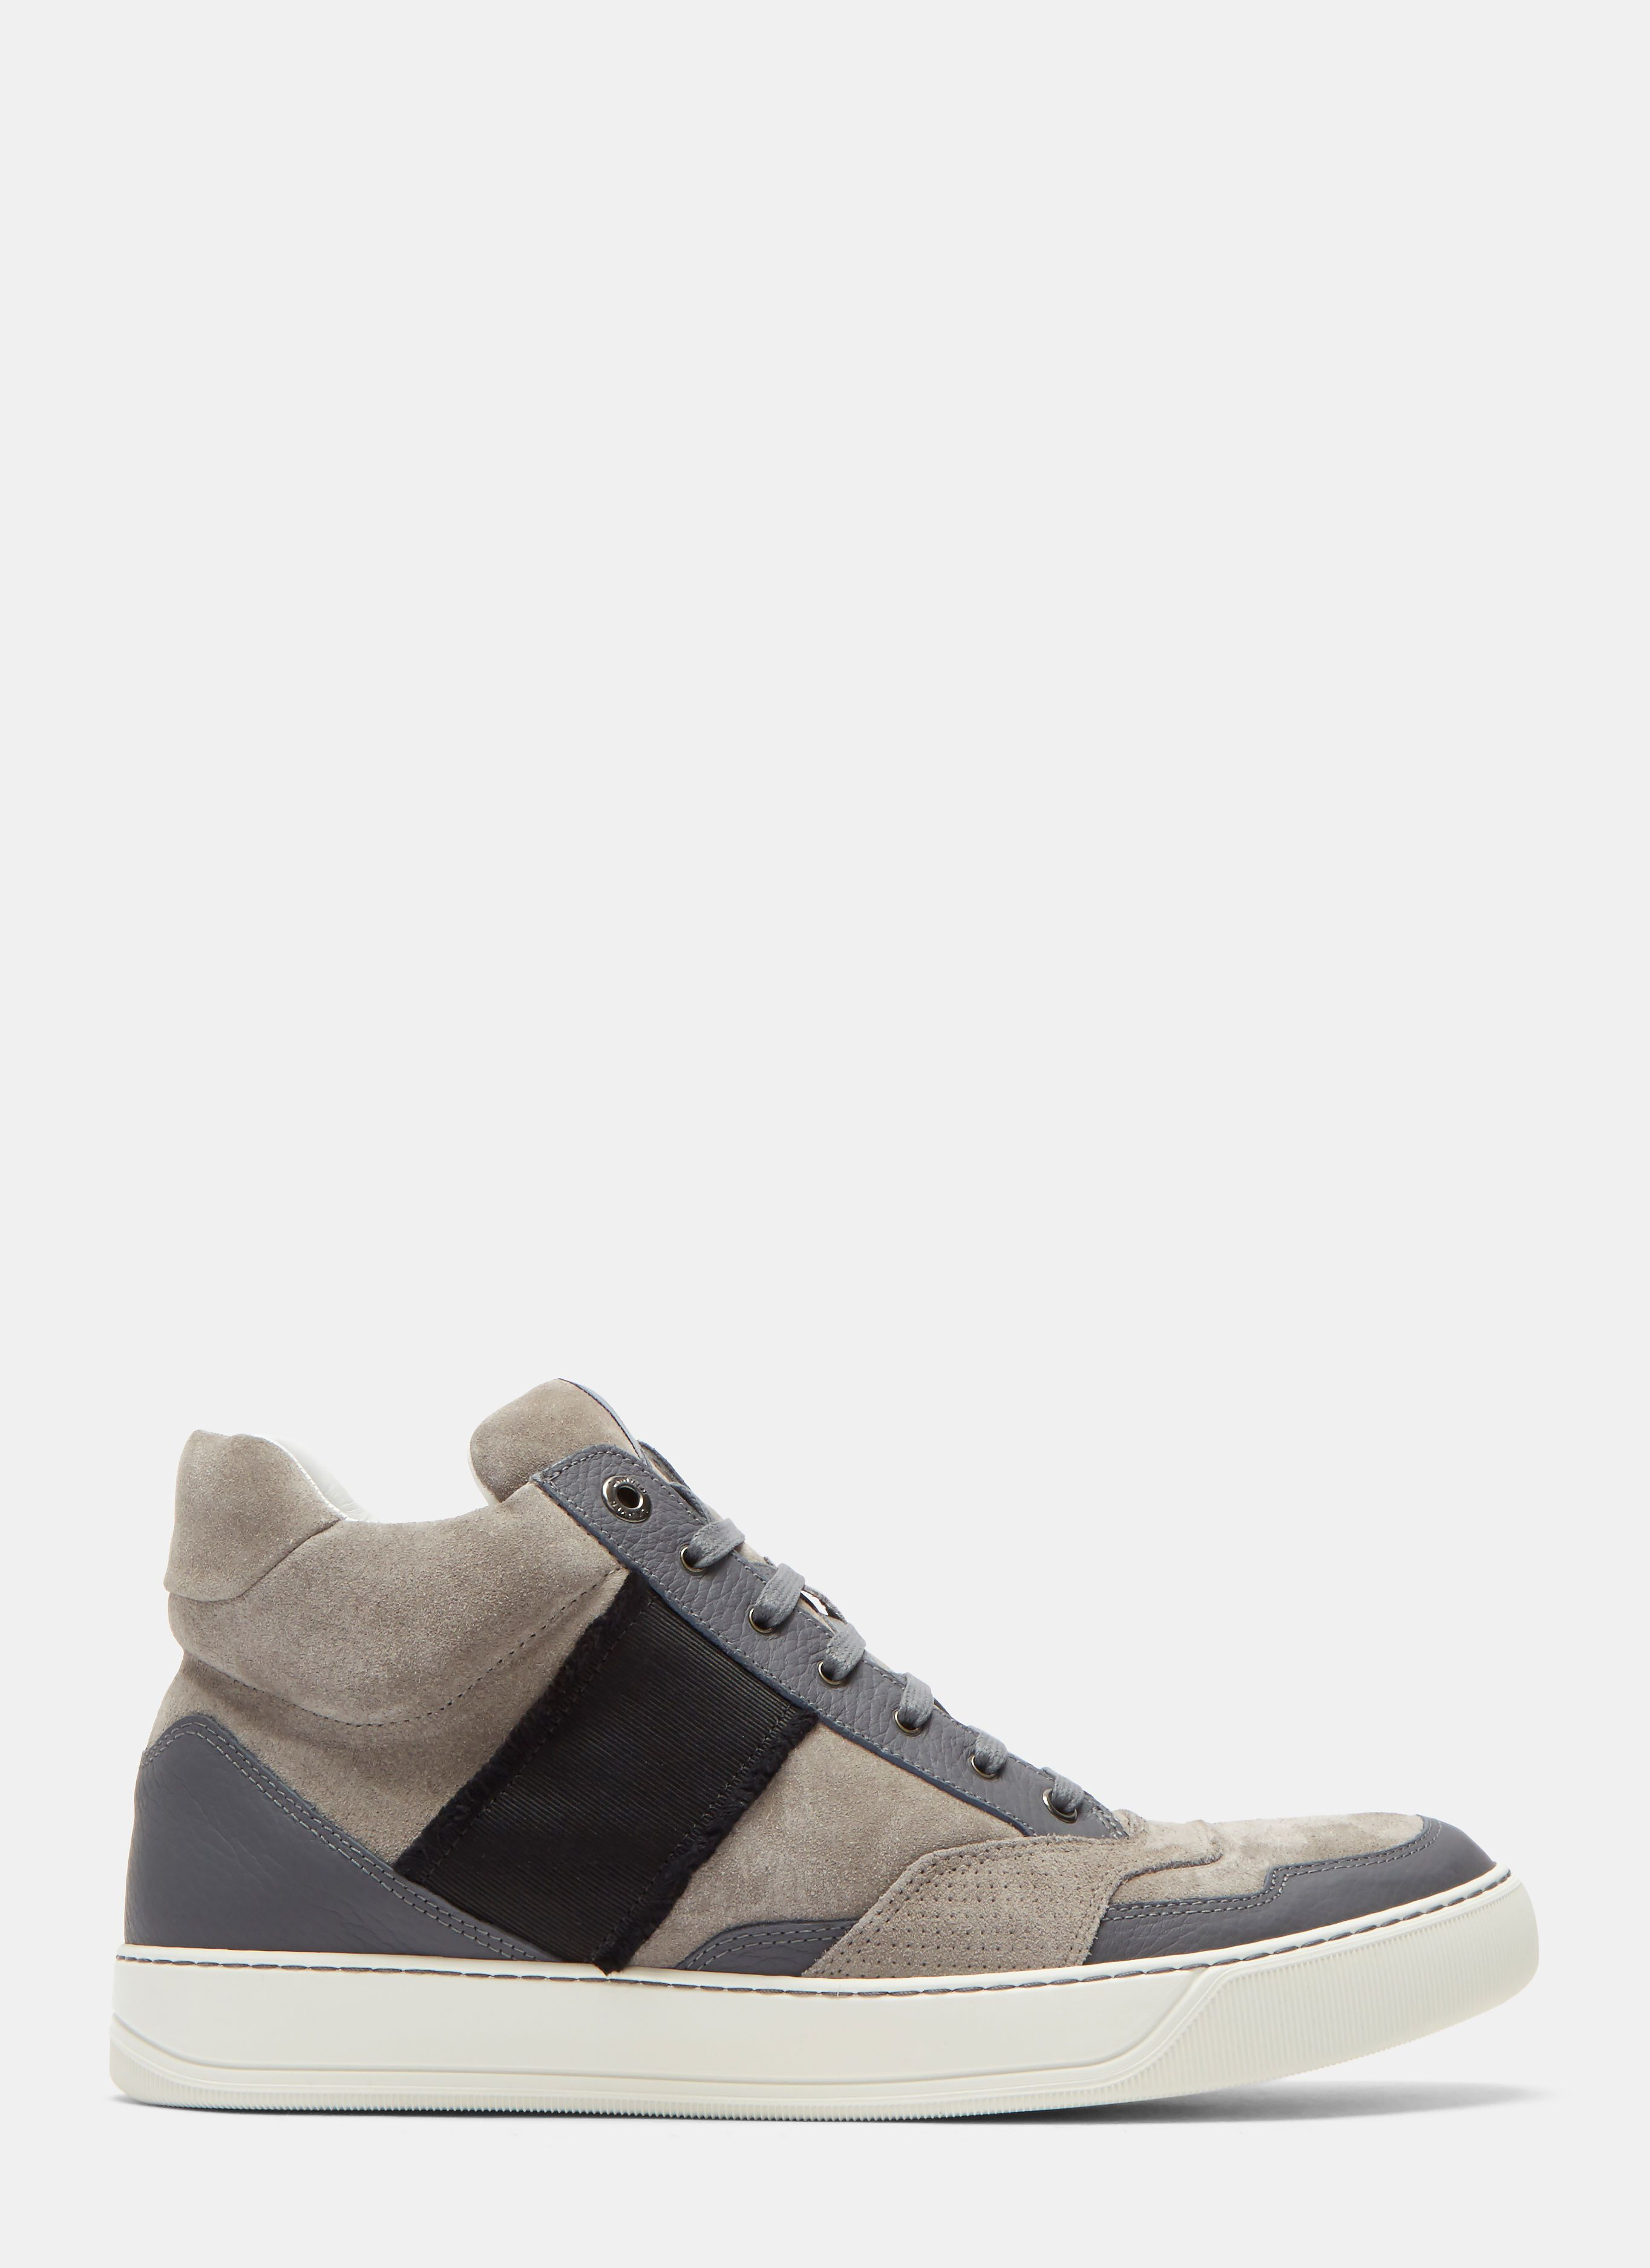 Explore Mens Trainers, Trainer Shoes, and more!